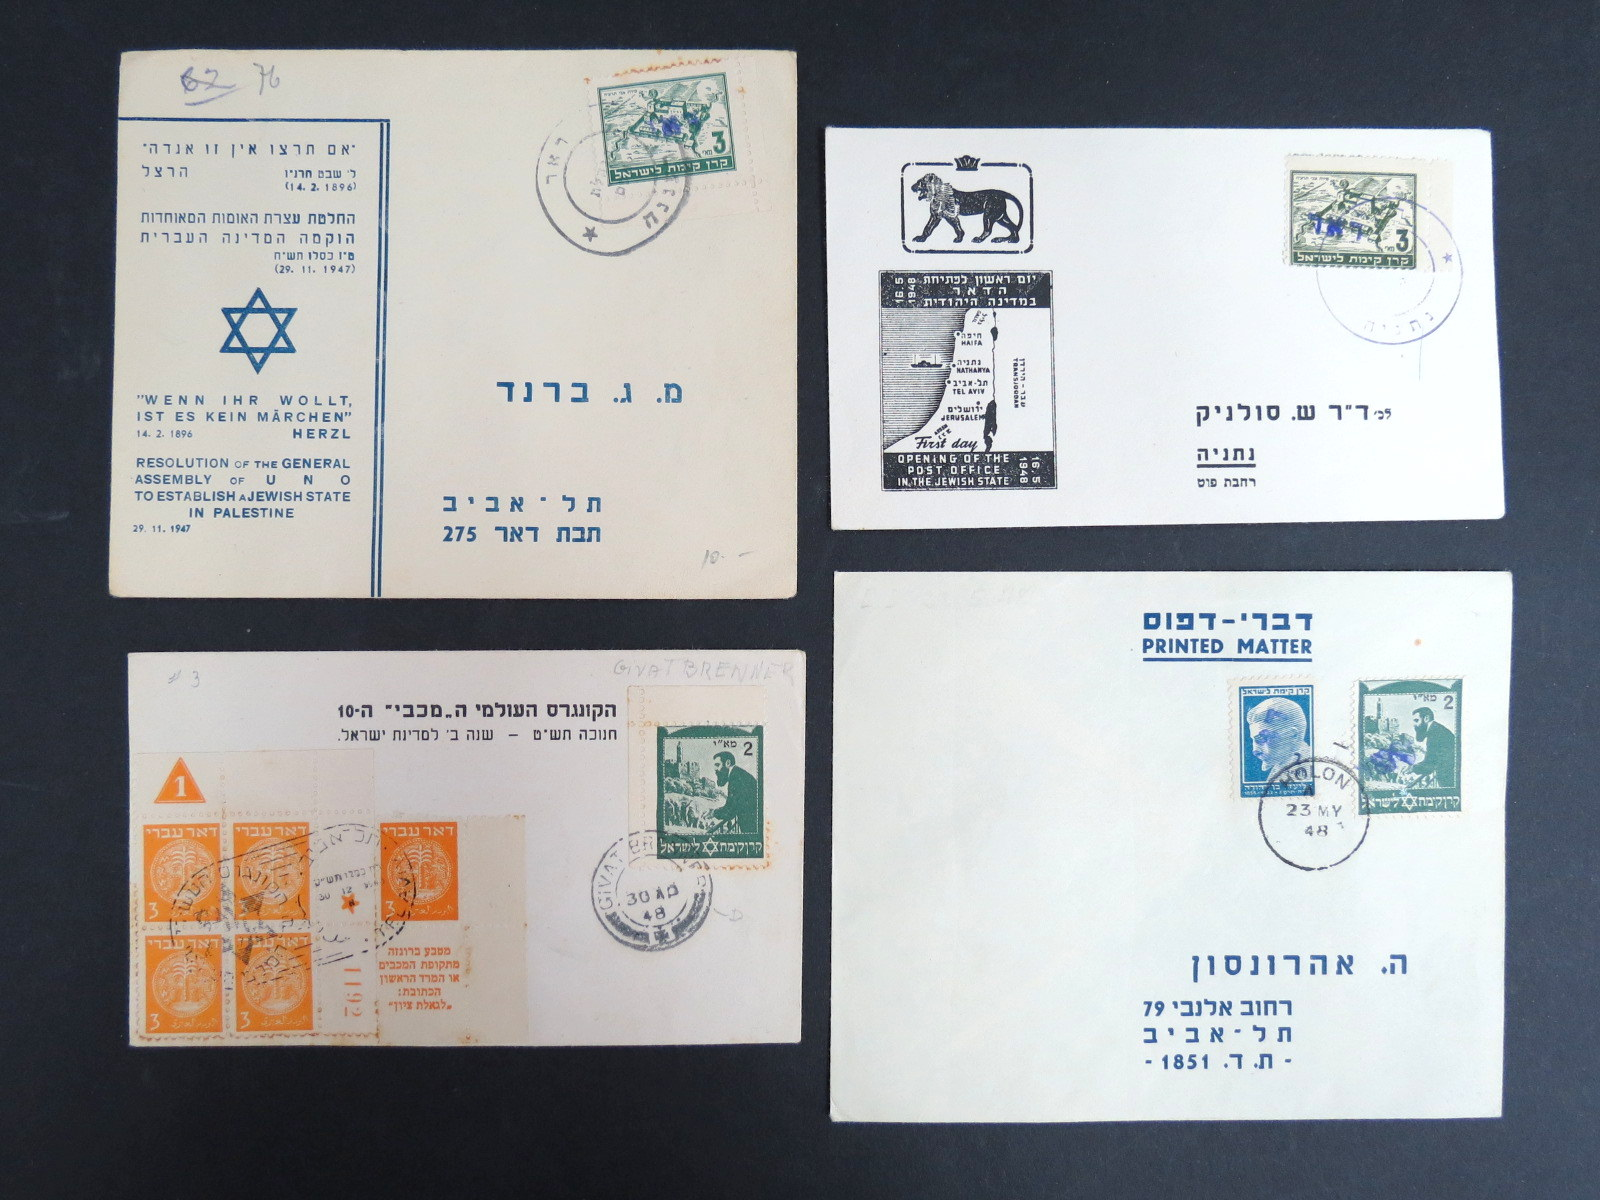 1948 INTERIM lot of 4 philatelic M. Ha'am covers: a. Natanya M. Ha'am pmk, franked 3 mils b. Raanana M. Ha'am pmk, franked 3 mils little stain c. Givat Brenner, mandate pmk 30 AP48, franked 2 mil, letter 5 stps of Doar